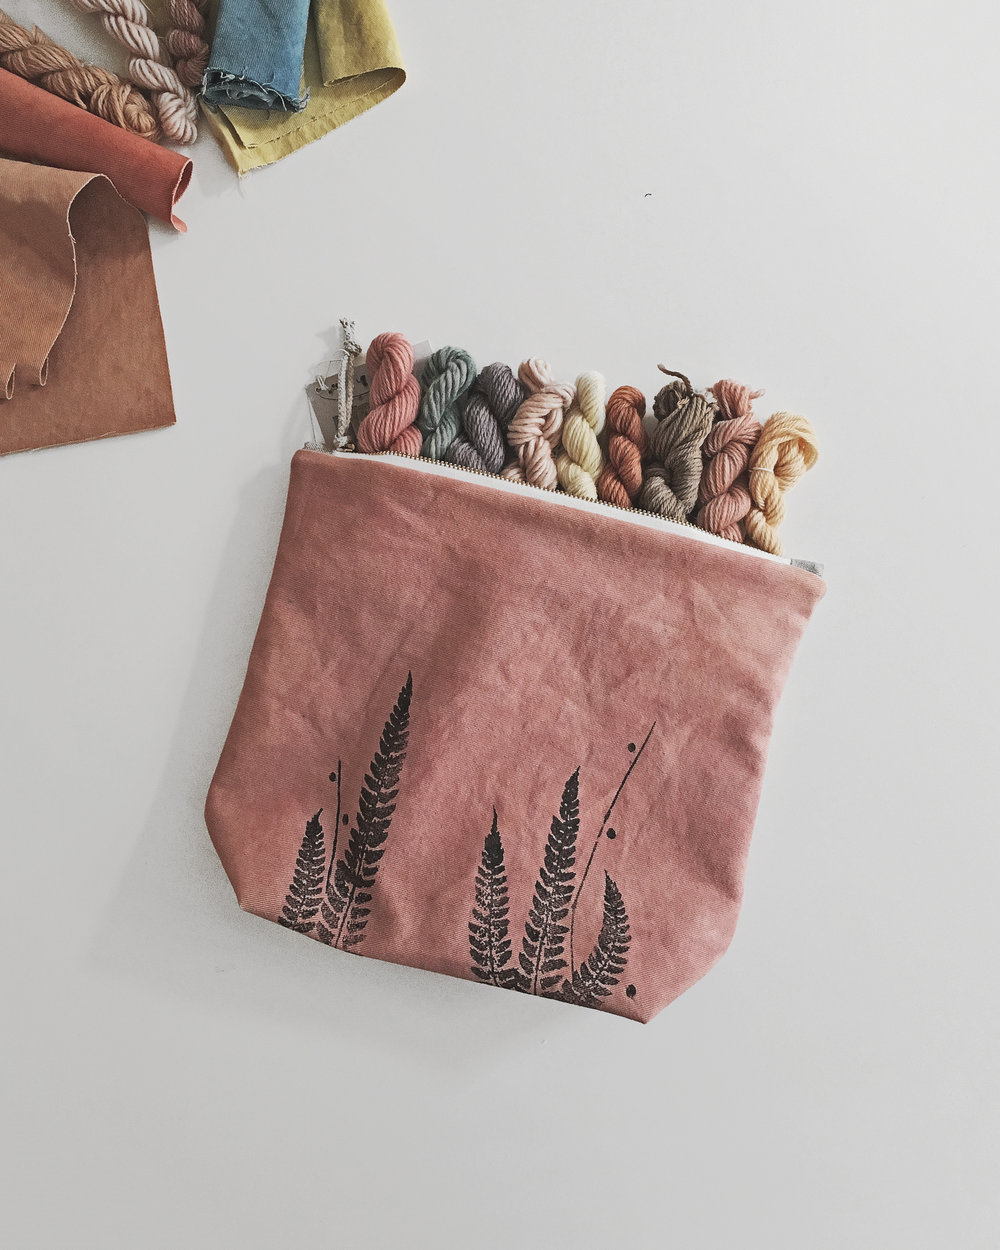 These plant dyed vegan project bags were developed by knitters themselves